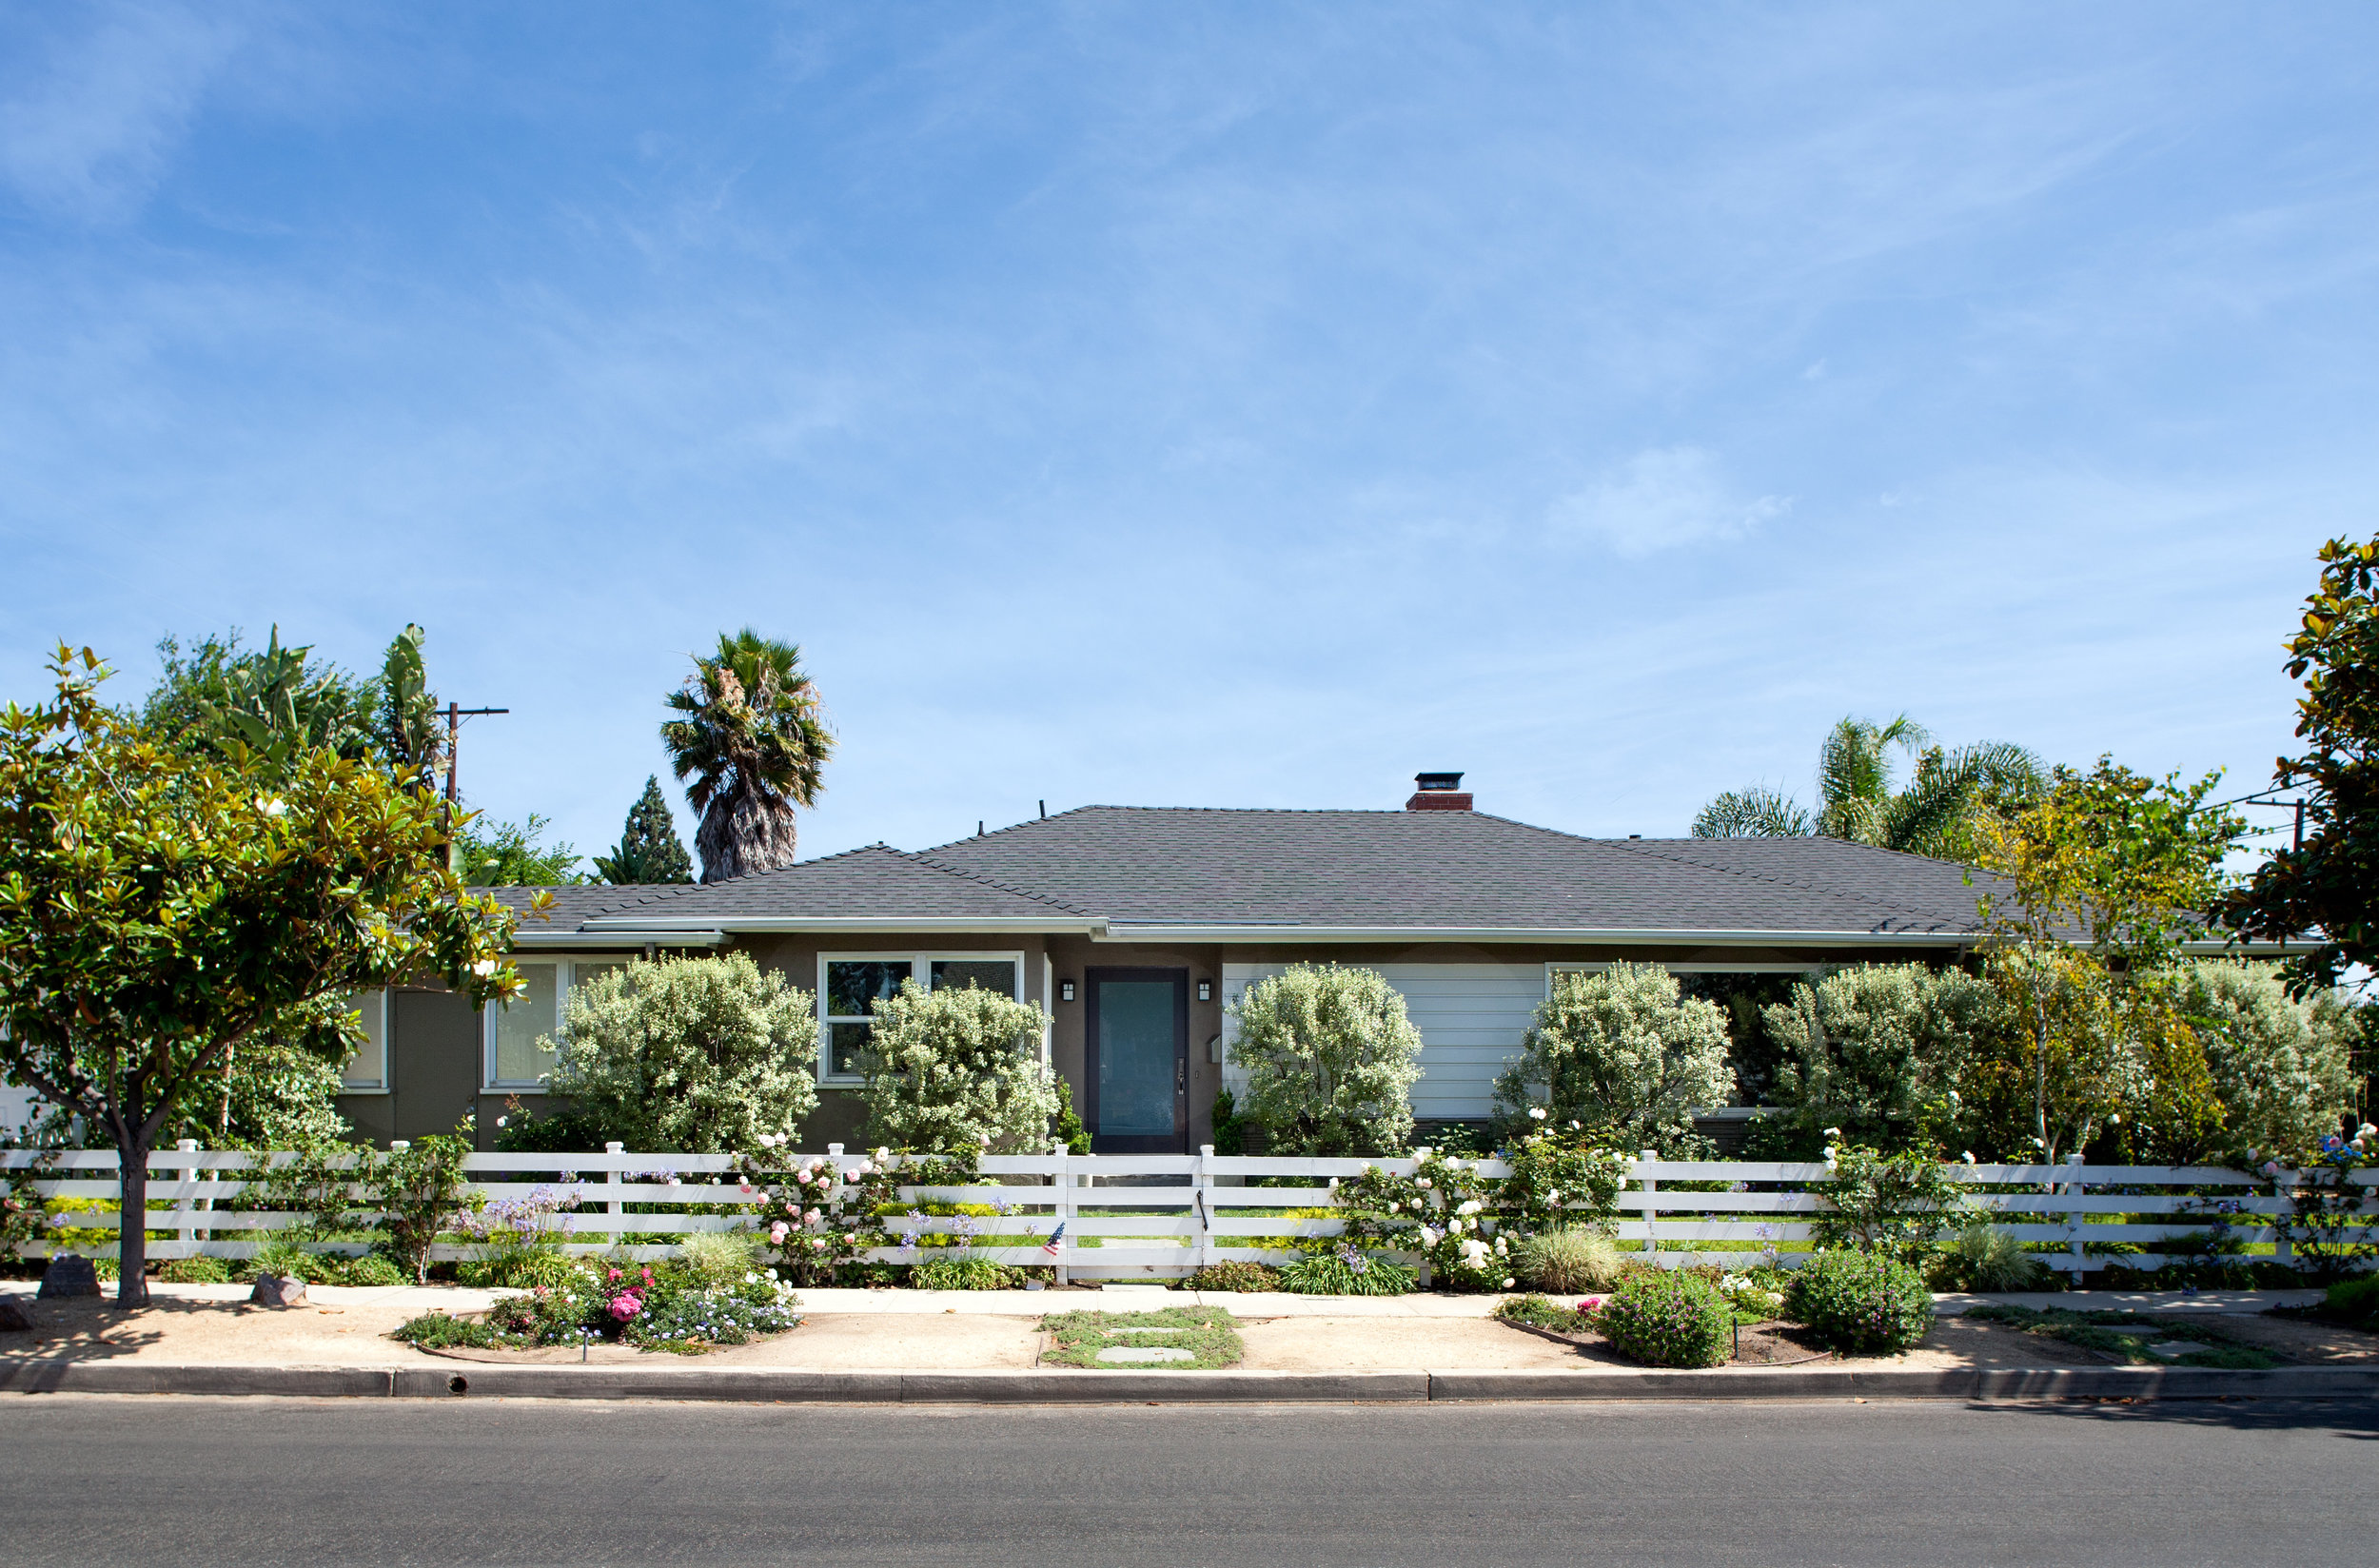 6301 W 77th St | Westchester | Offered at $1,225,000